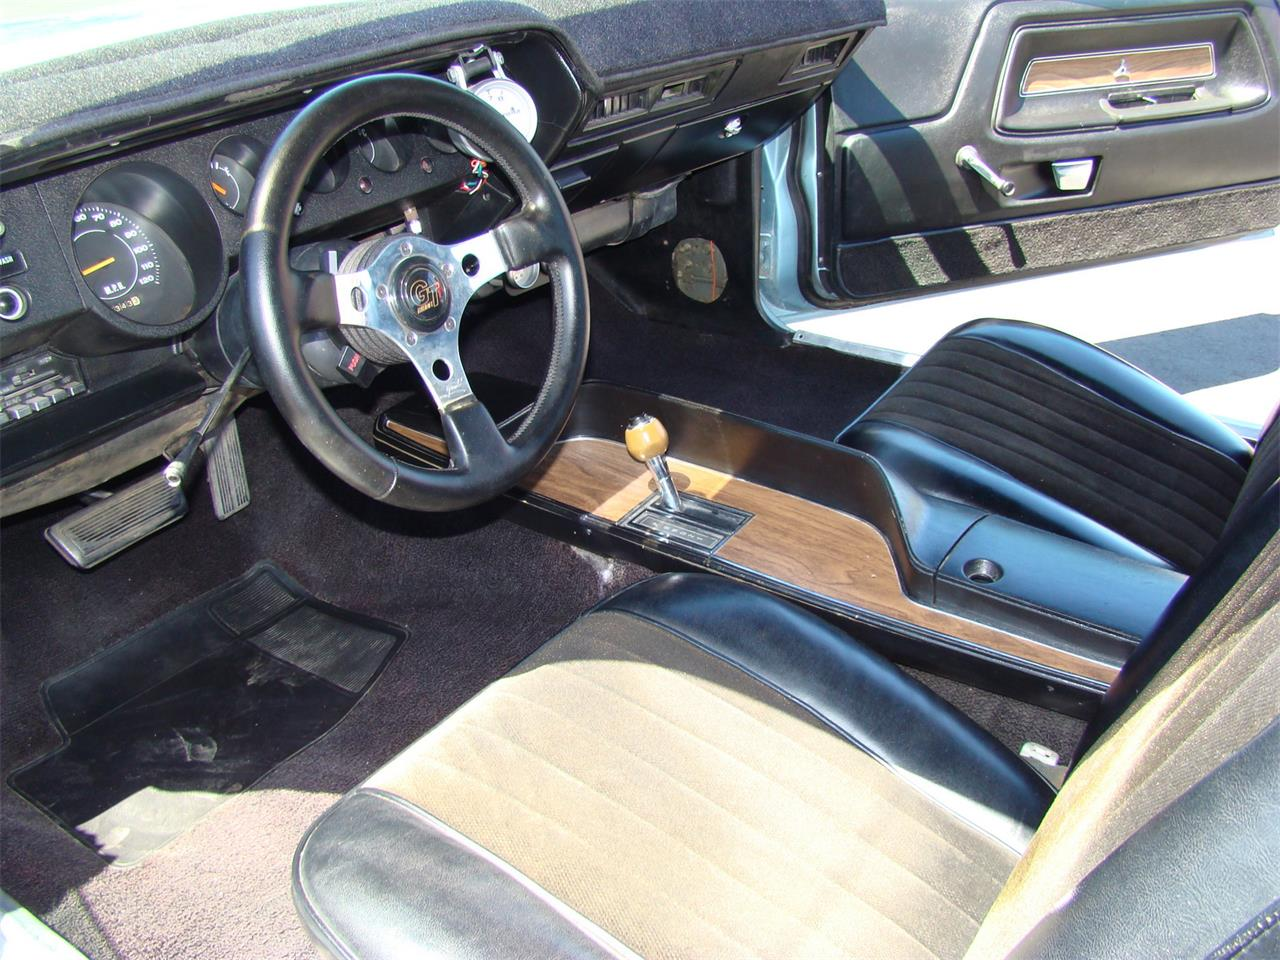 Large Picture of Classic 1970 Dodge Challenger located in Phoenix Arizona - $20,000.00 - M4T9